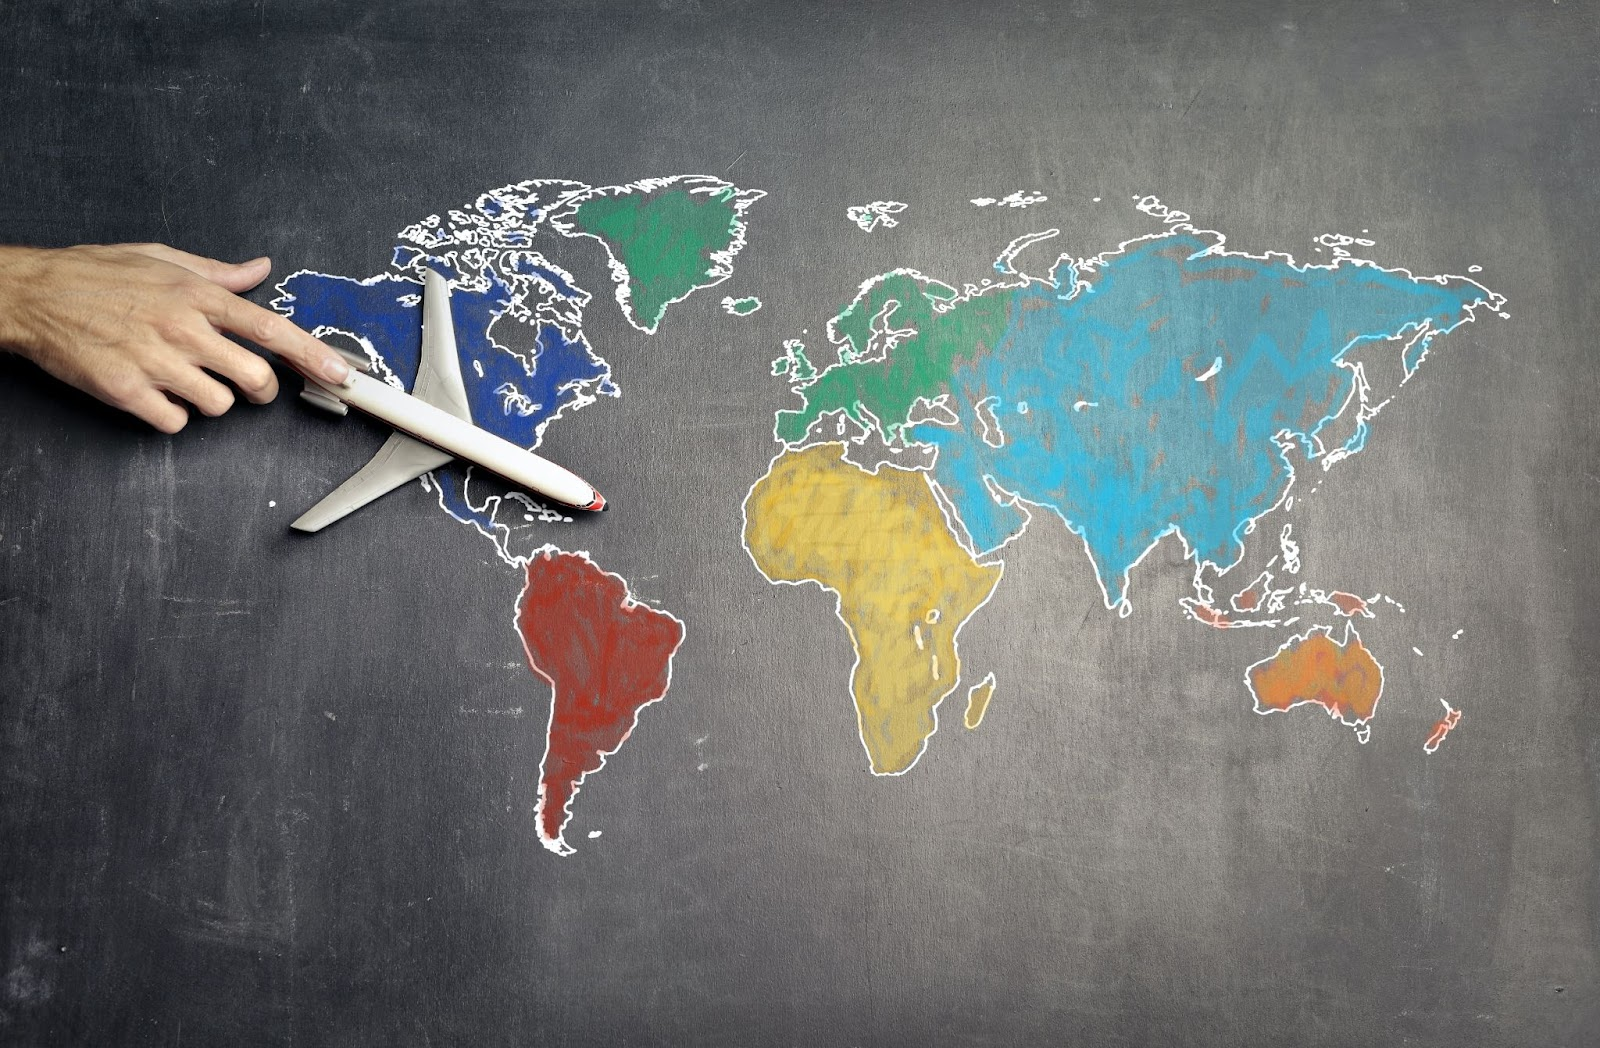 A colored map of the world with a toy plane